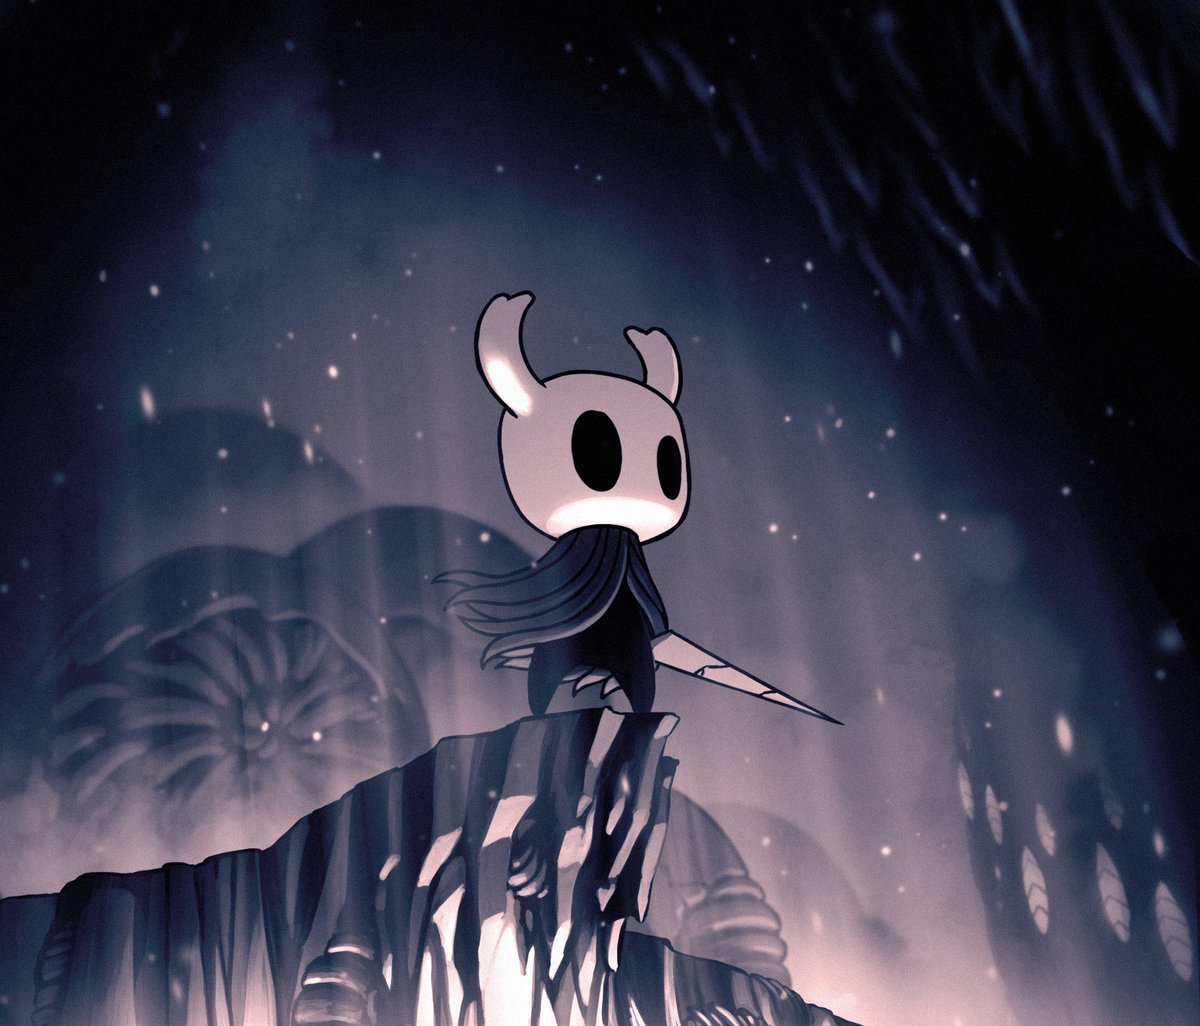 I realize there is no shortage of excellent #metroidvania games on the #nintendoswitch - but if my first 3 hours are any indication, in a sea of excellence, #HollowKnight is still exceptional. Beautiful presentation and gameplay. Love Metroid? Play it now.<br>http://pic.twitter.com/c1Wny5m3HR